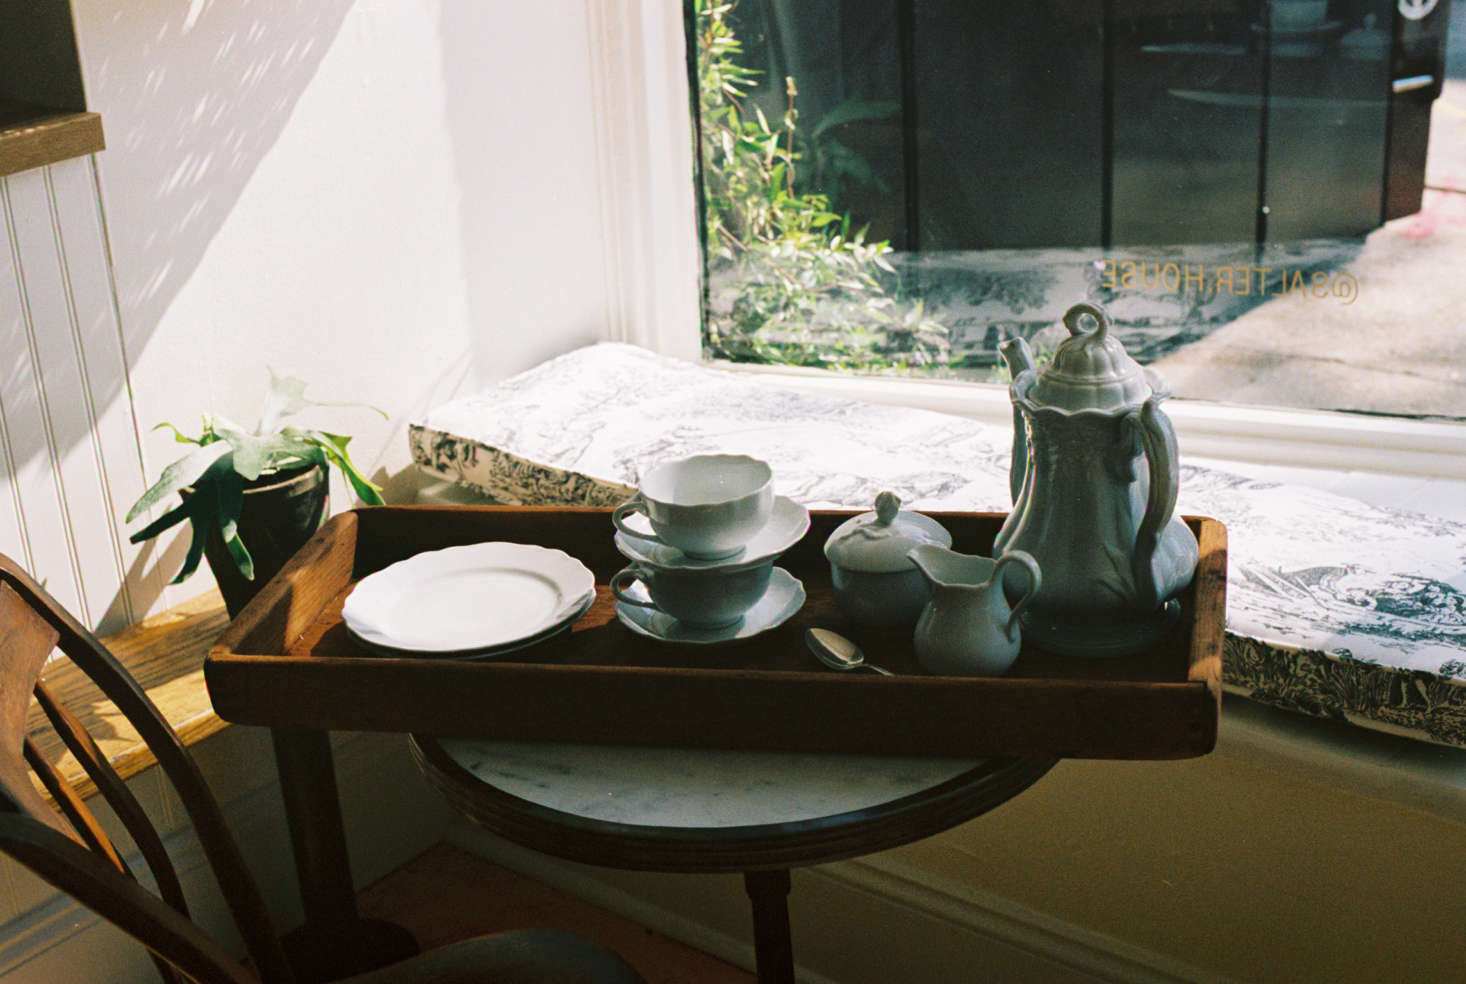 A detail of tea service, served in a sunny window seat. The shop is also entirely plastic free, and visitors will not find any waste baskets.